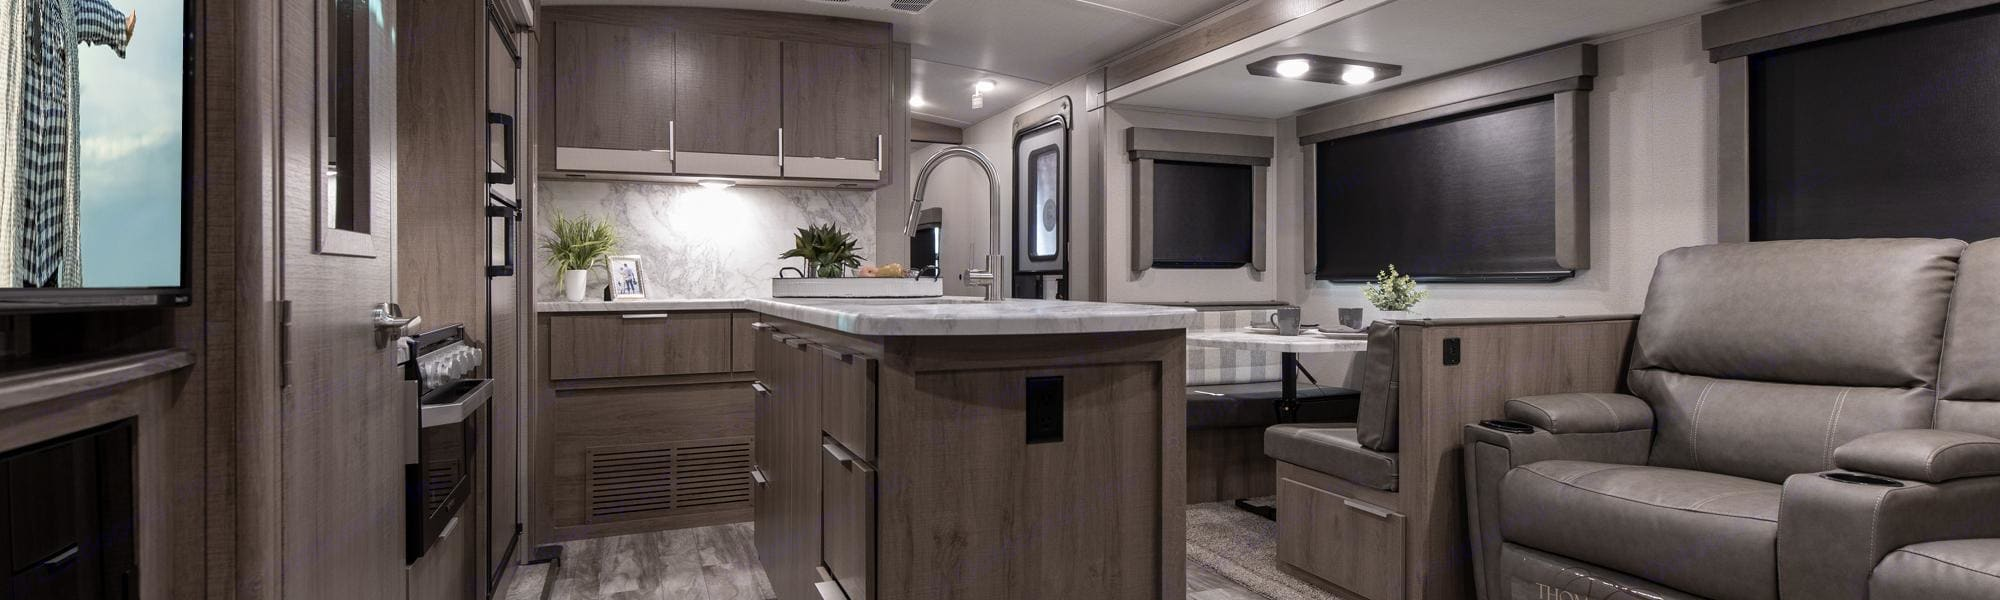 Spacious Kitchen and Dining. Grand Design 3110BH 2021